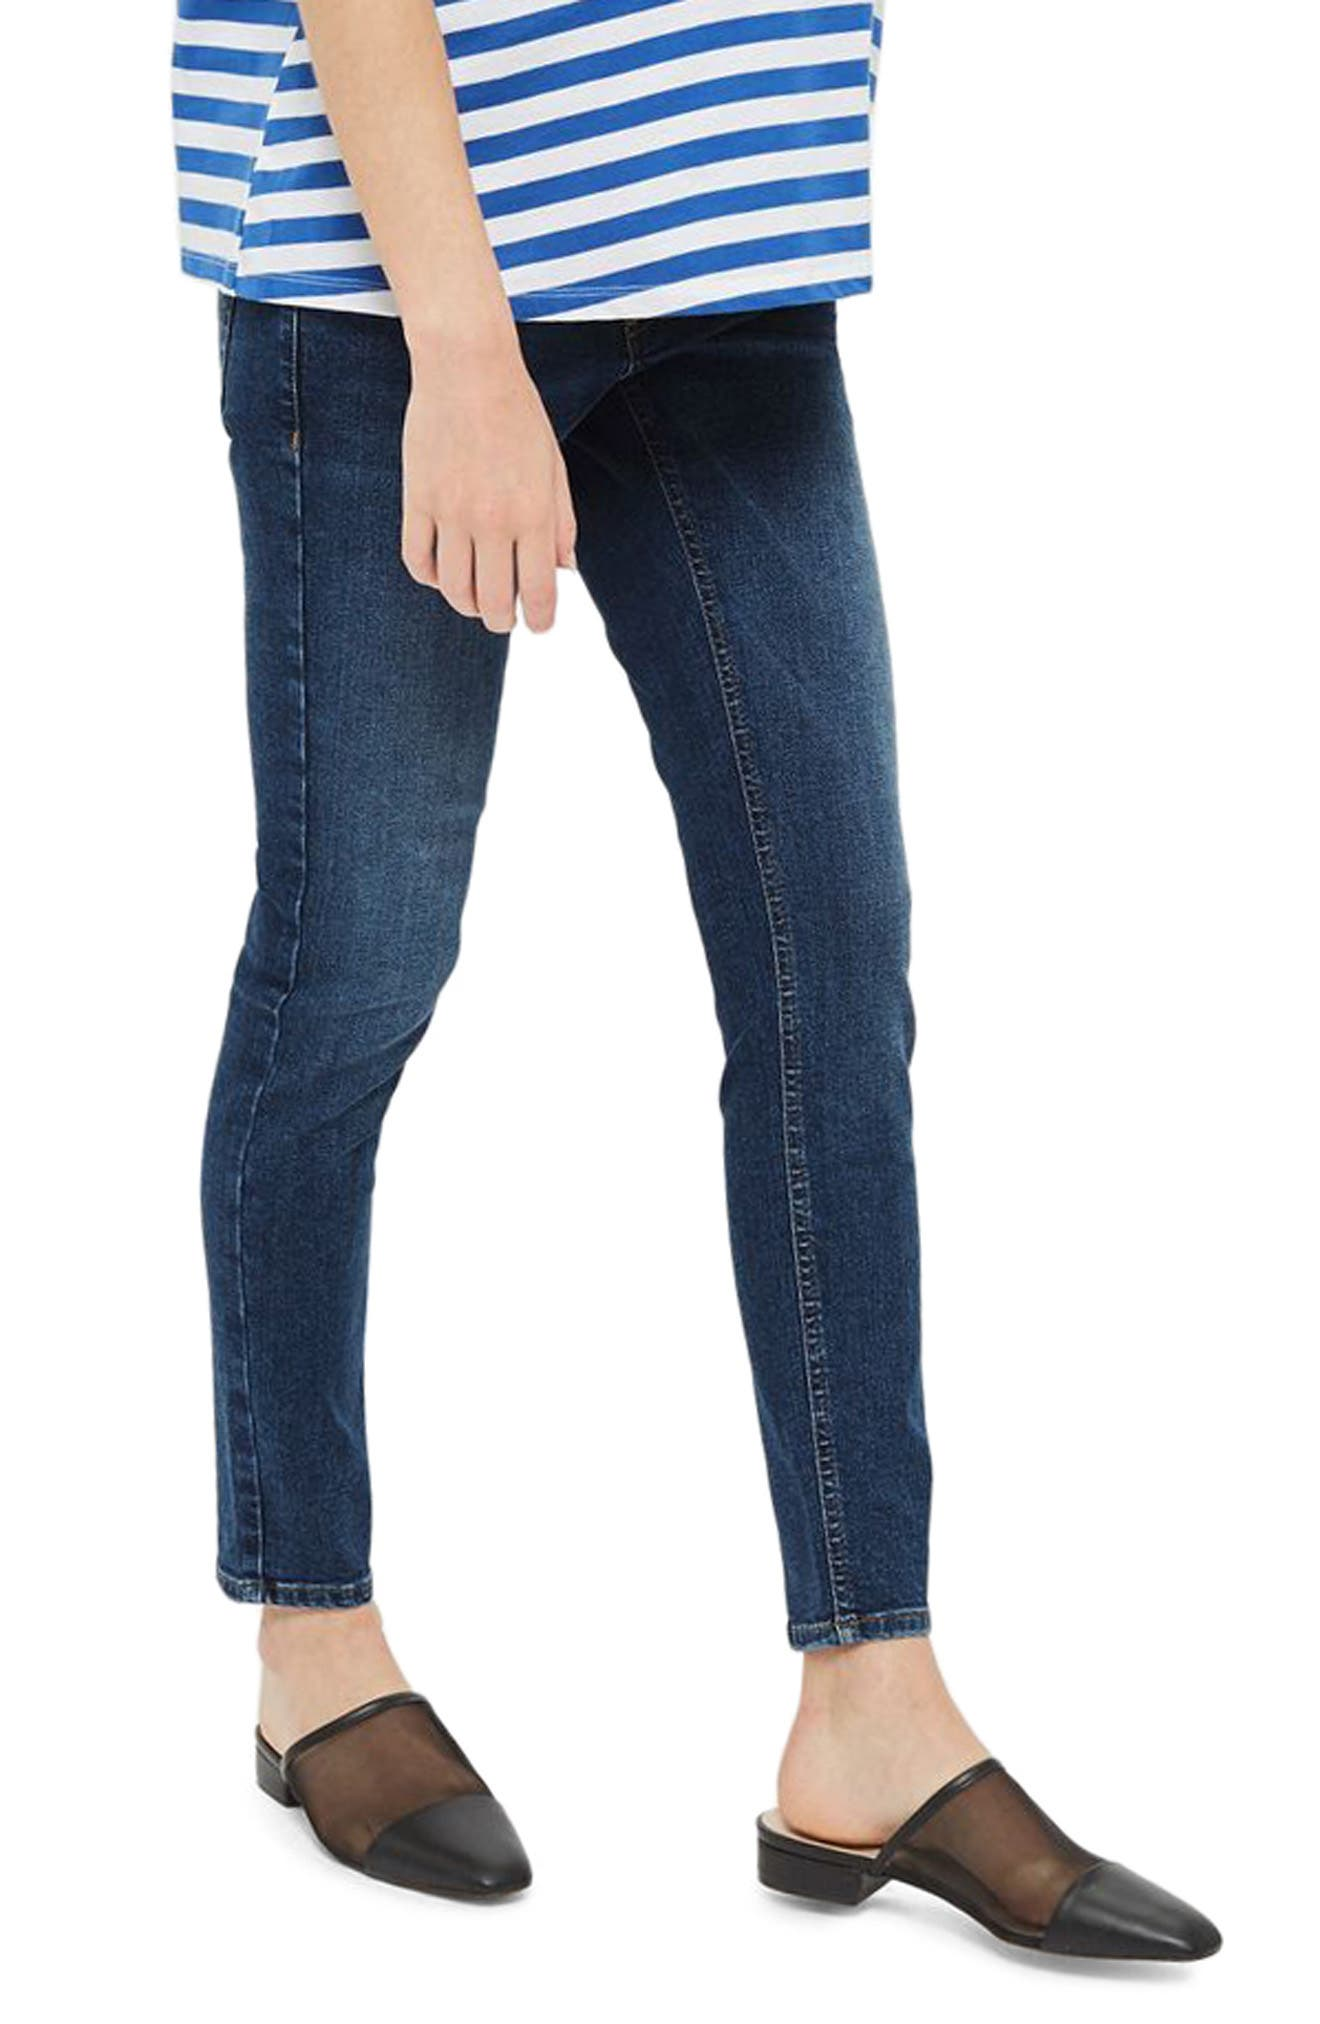 Jamie Over the Bump Maternity Skinny Jeans,                         Main,                         color, Mid Denim